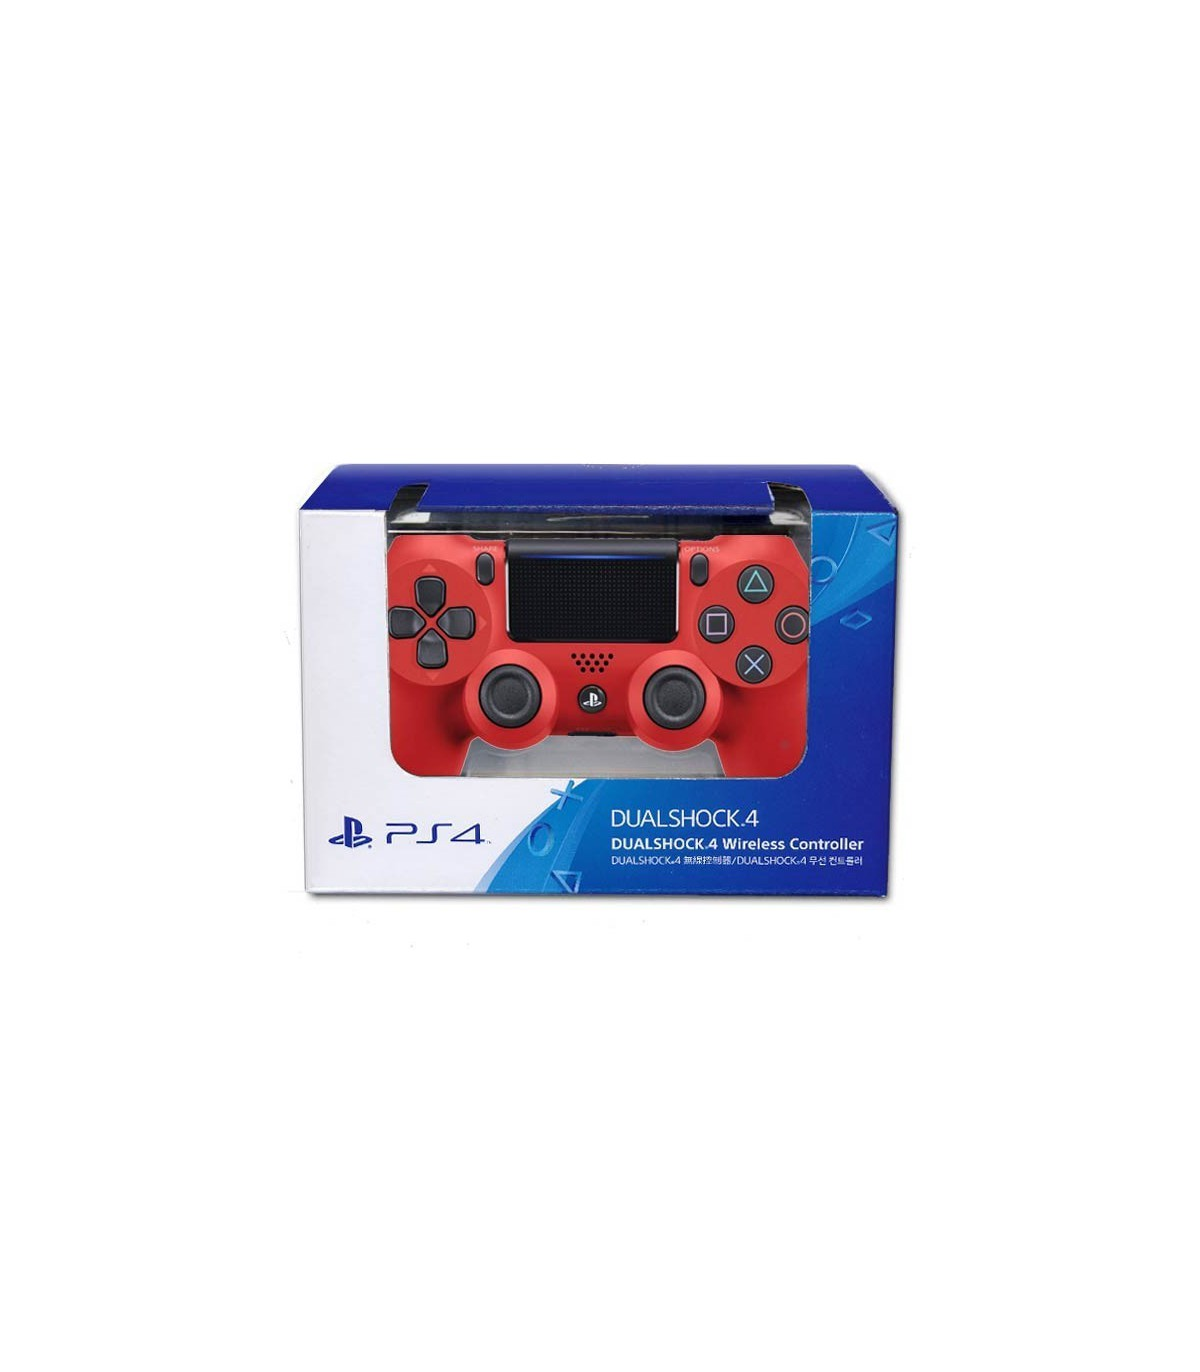 دسته قرمز اسلیم DualShock 4 Red Slim Wireless Controller